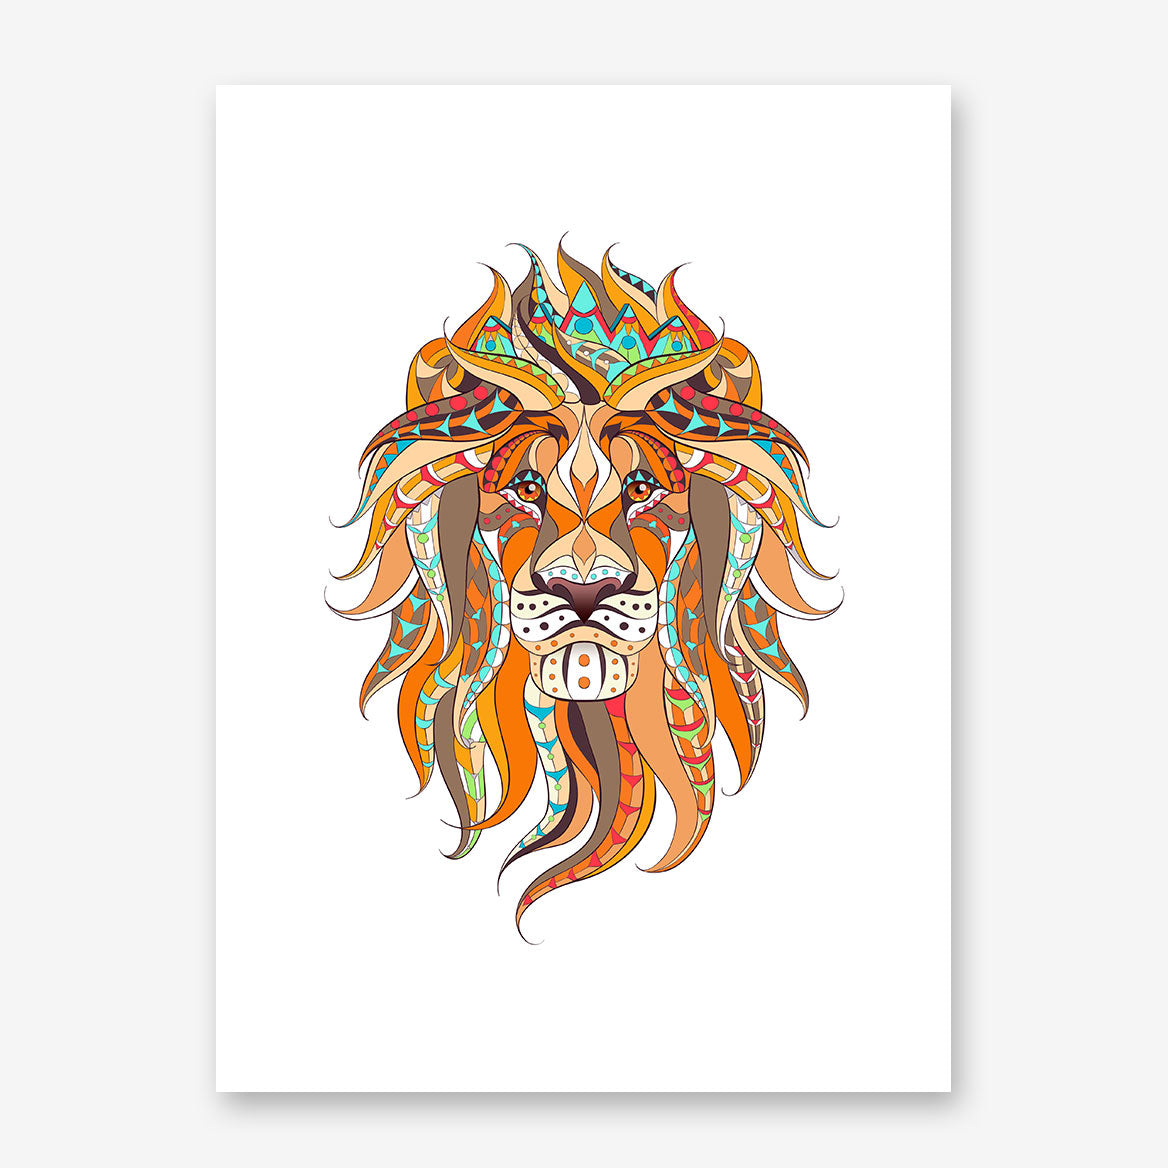 Patterned poster print with a lion's head on white background